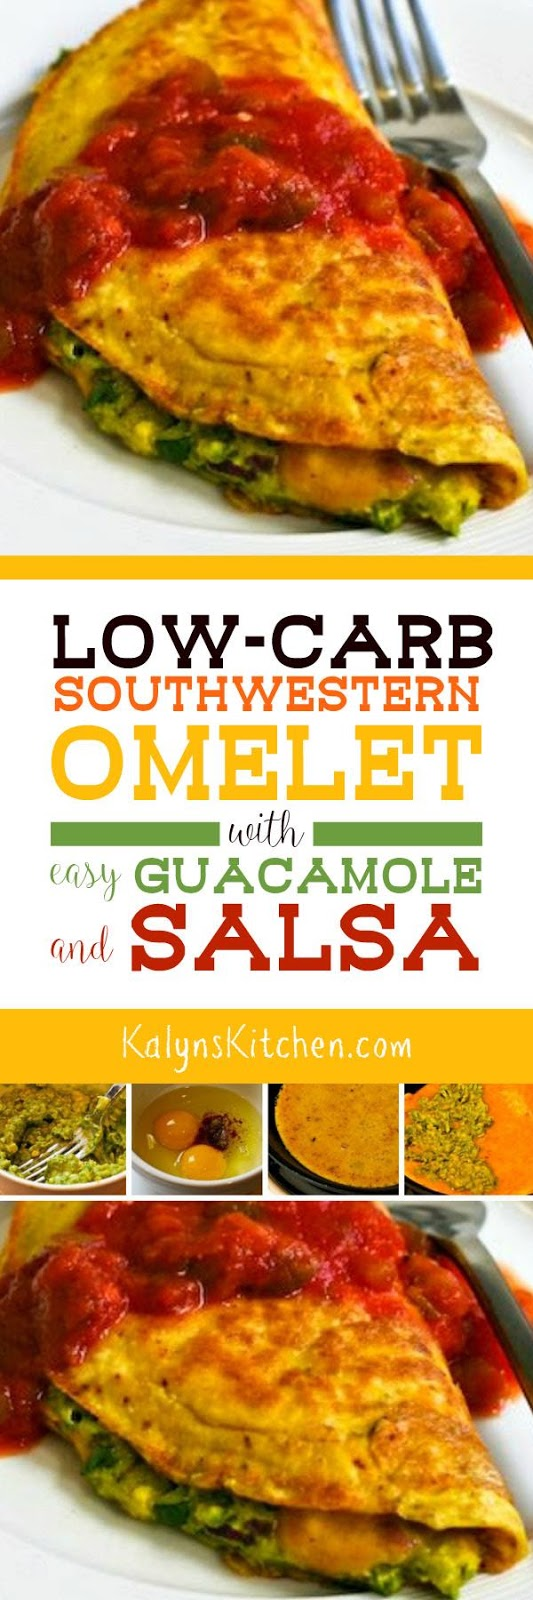 Low-Carb Southwestern Omelet with Easy Guacamole and Salsa ...